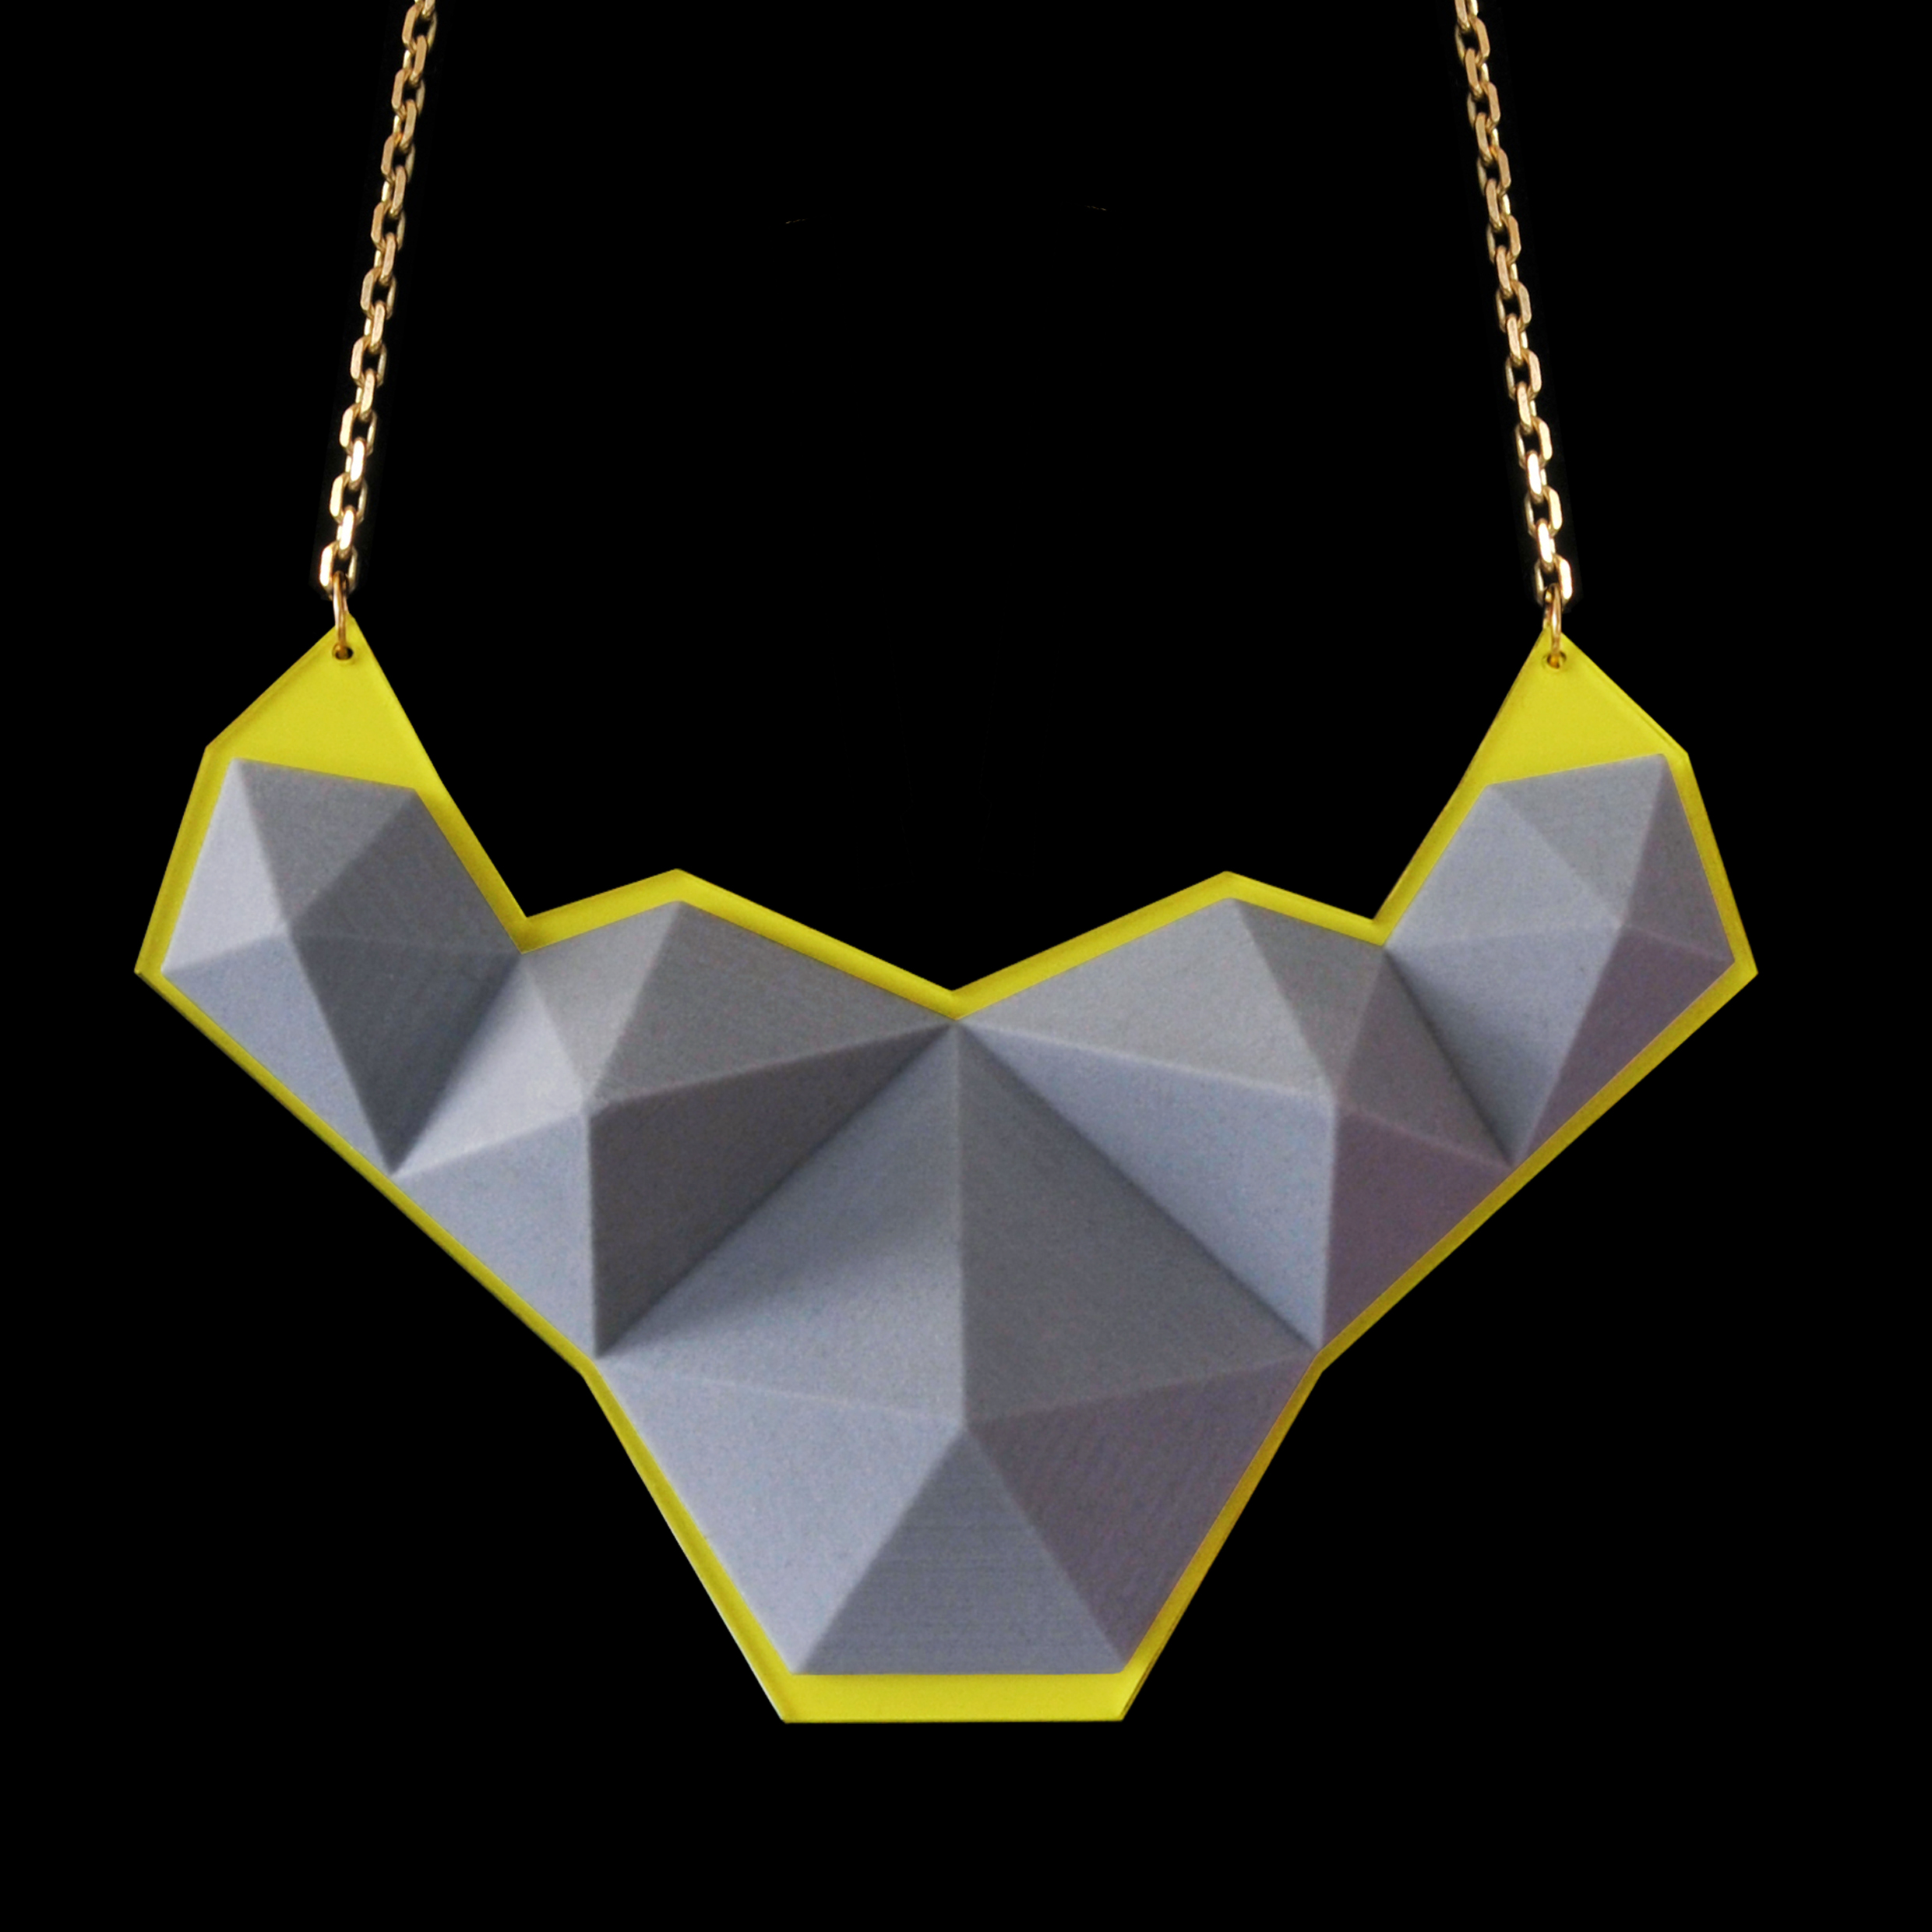 Stilio Necklace:  3D printed on the zCorp 350 with Acrylic back